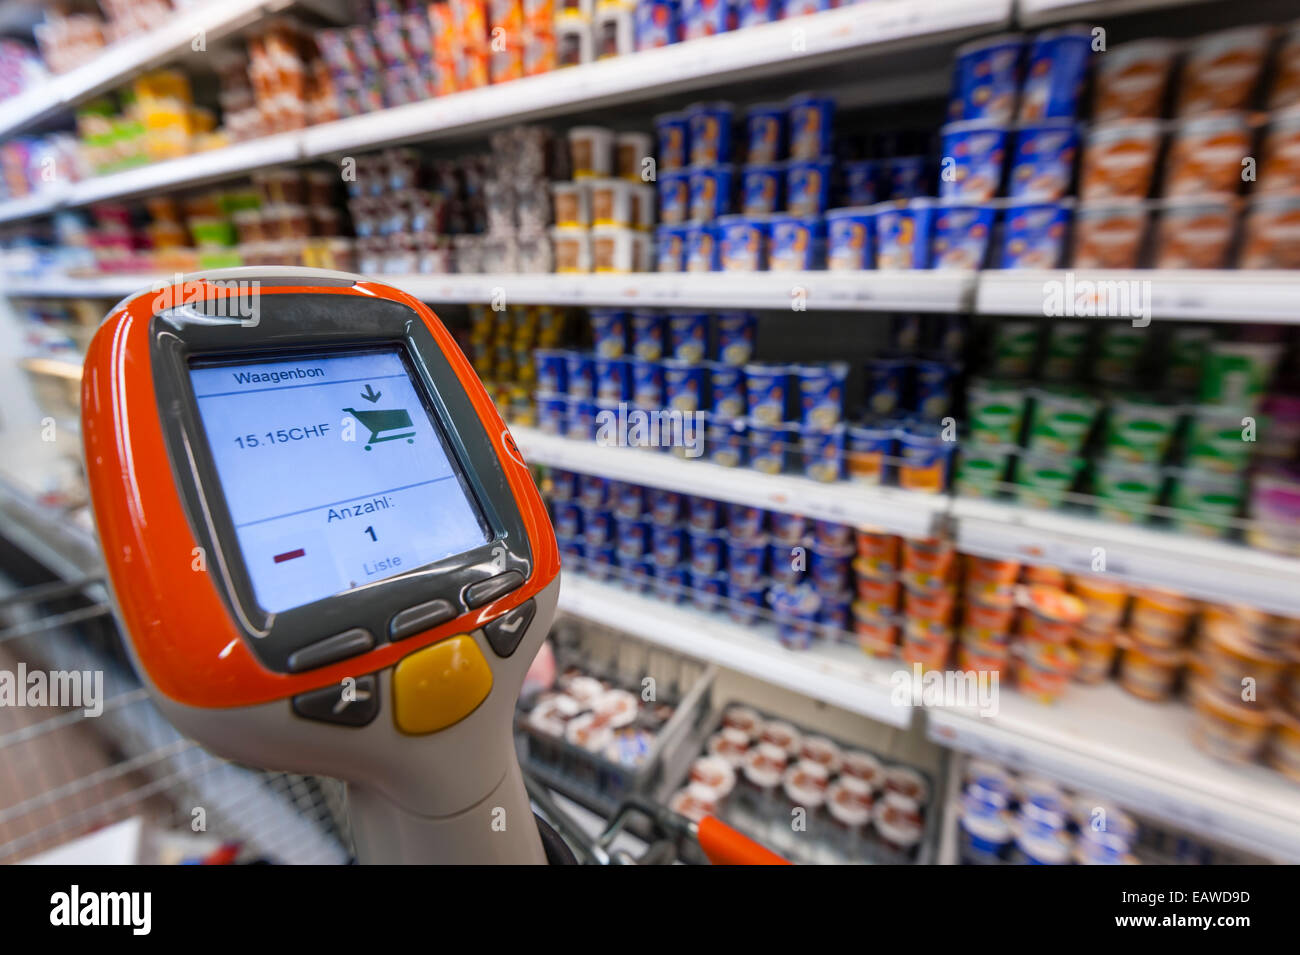 Image result for hand held self checkout device